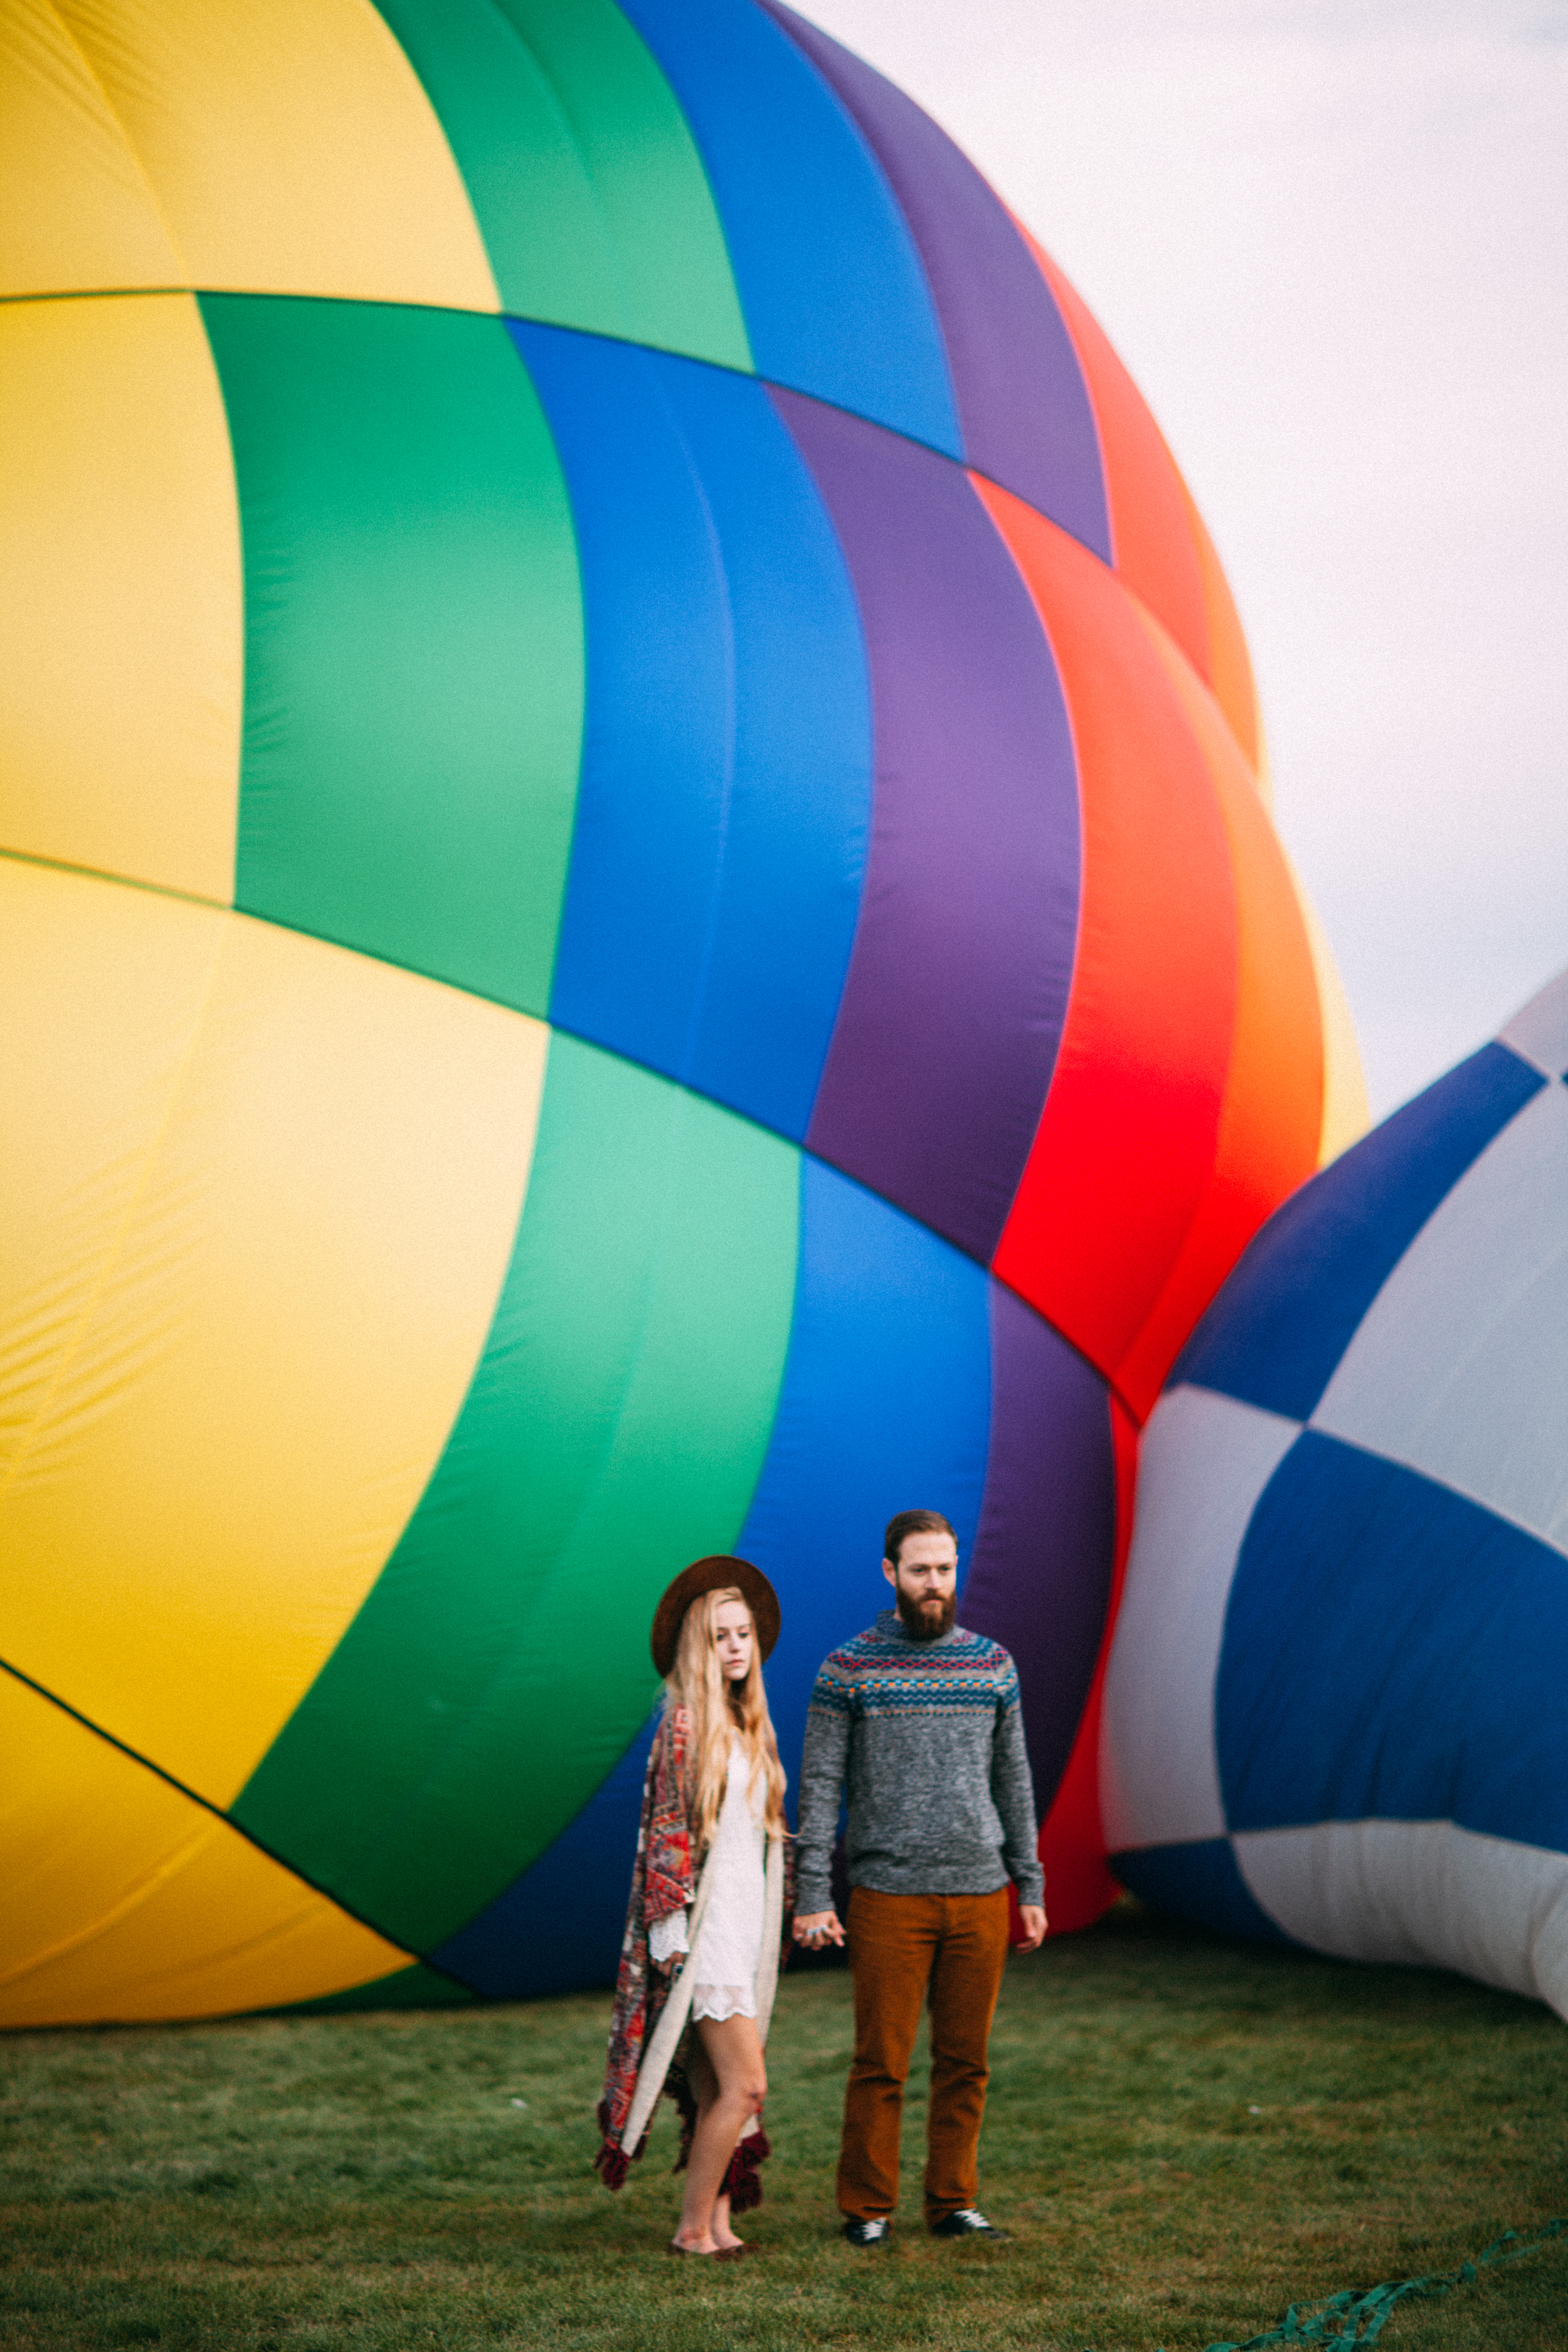 Urban Outfitters Albuquerque Hot Air Balloon Festival Lifestyle Photography by The Finches